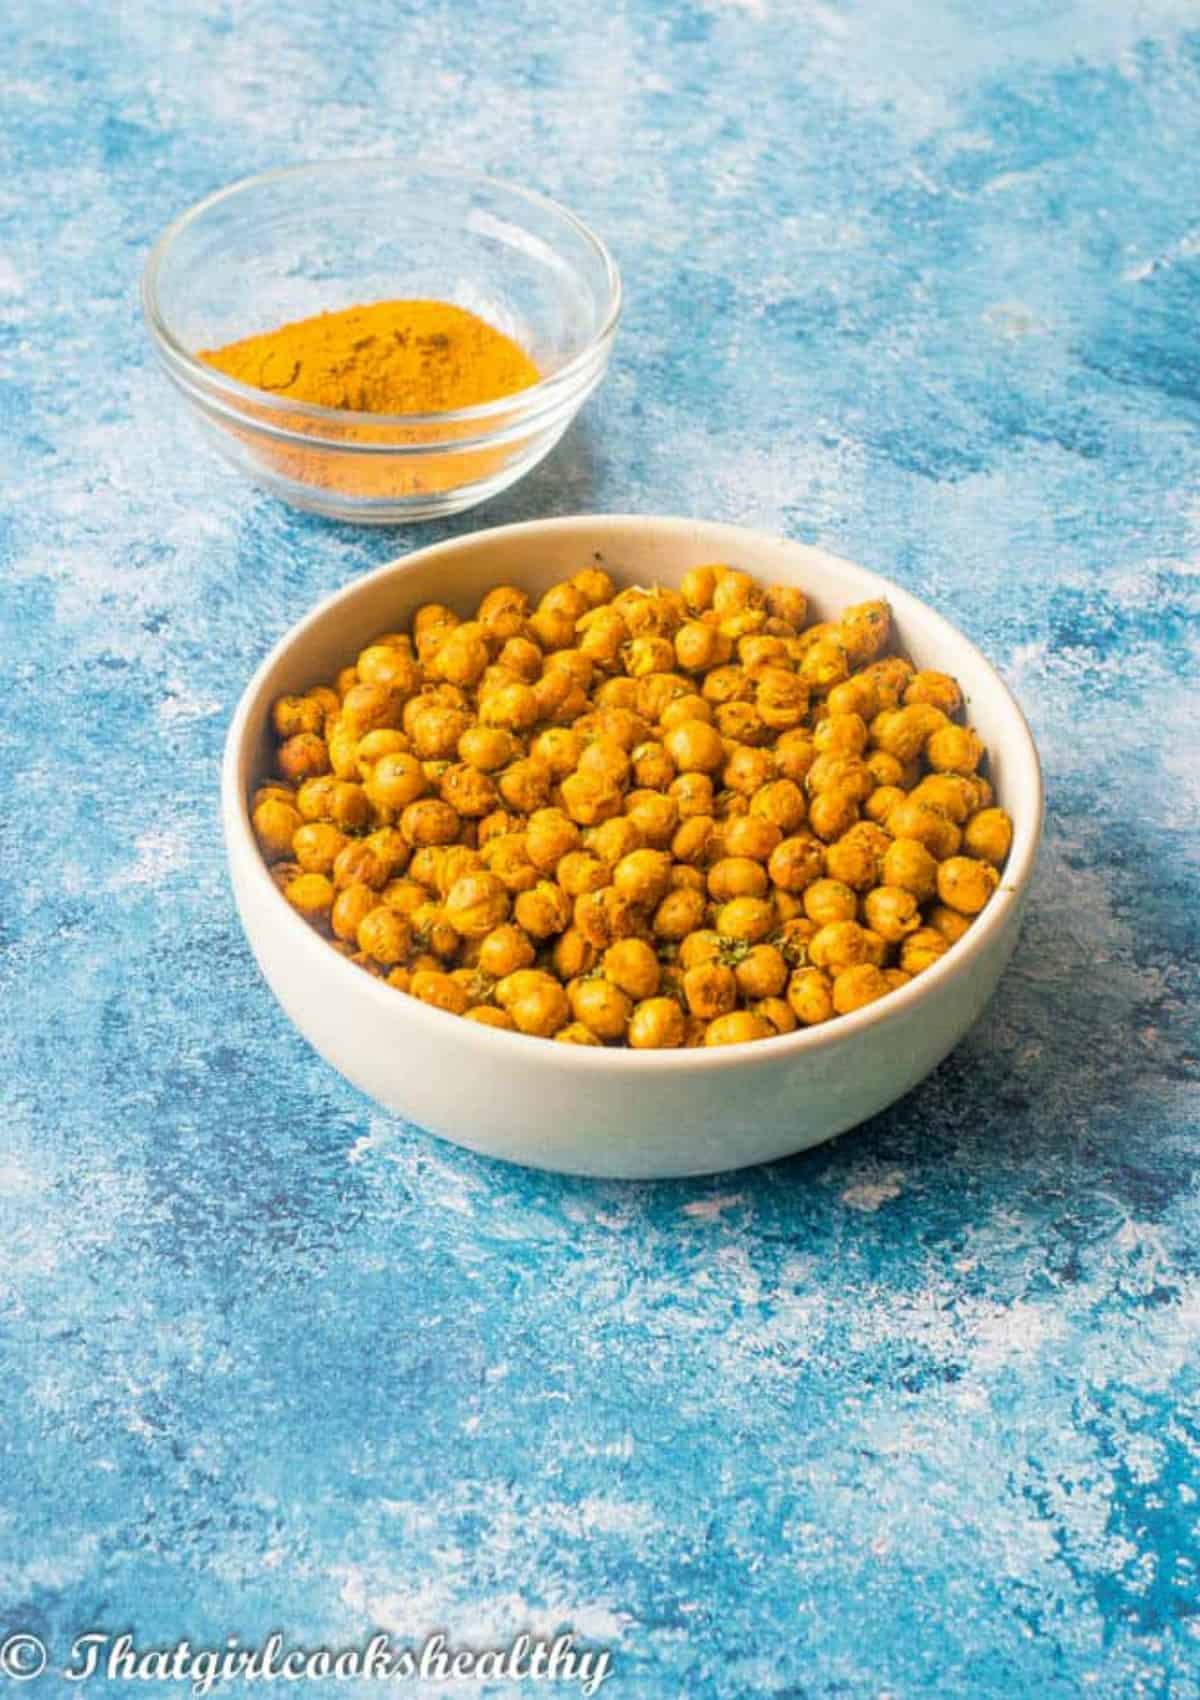 chickpeas in a bowl with curry powder in another bowl